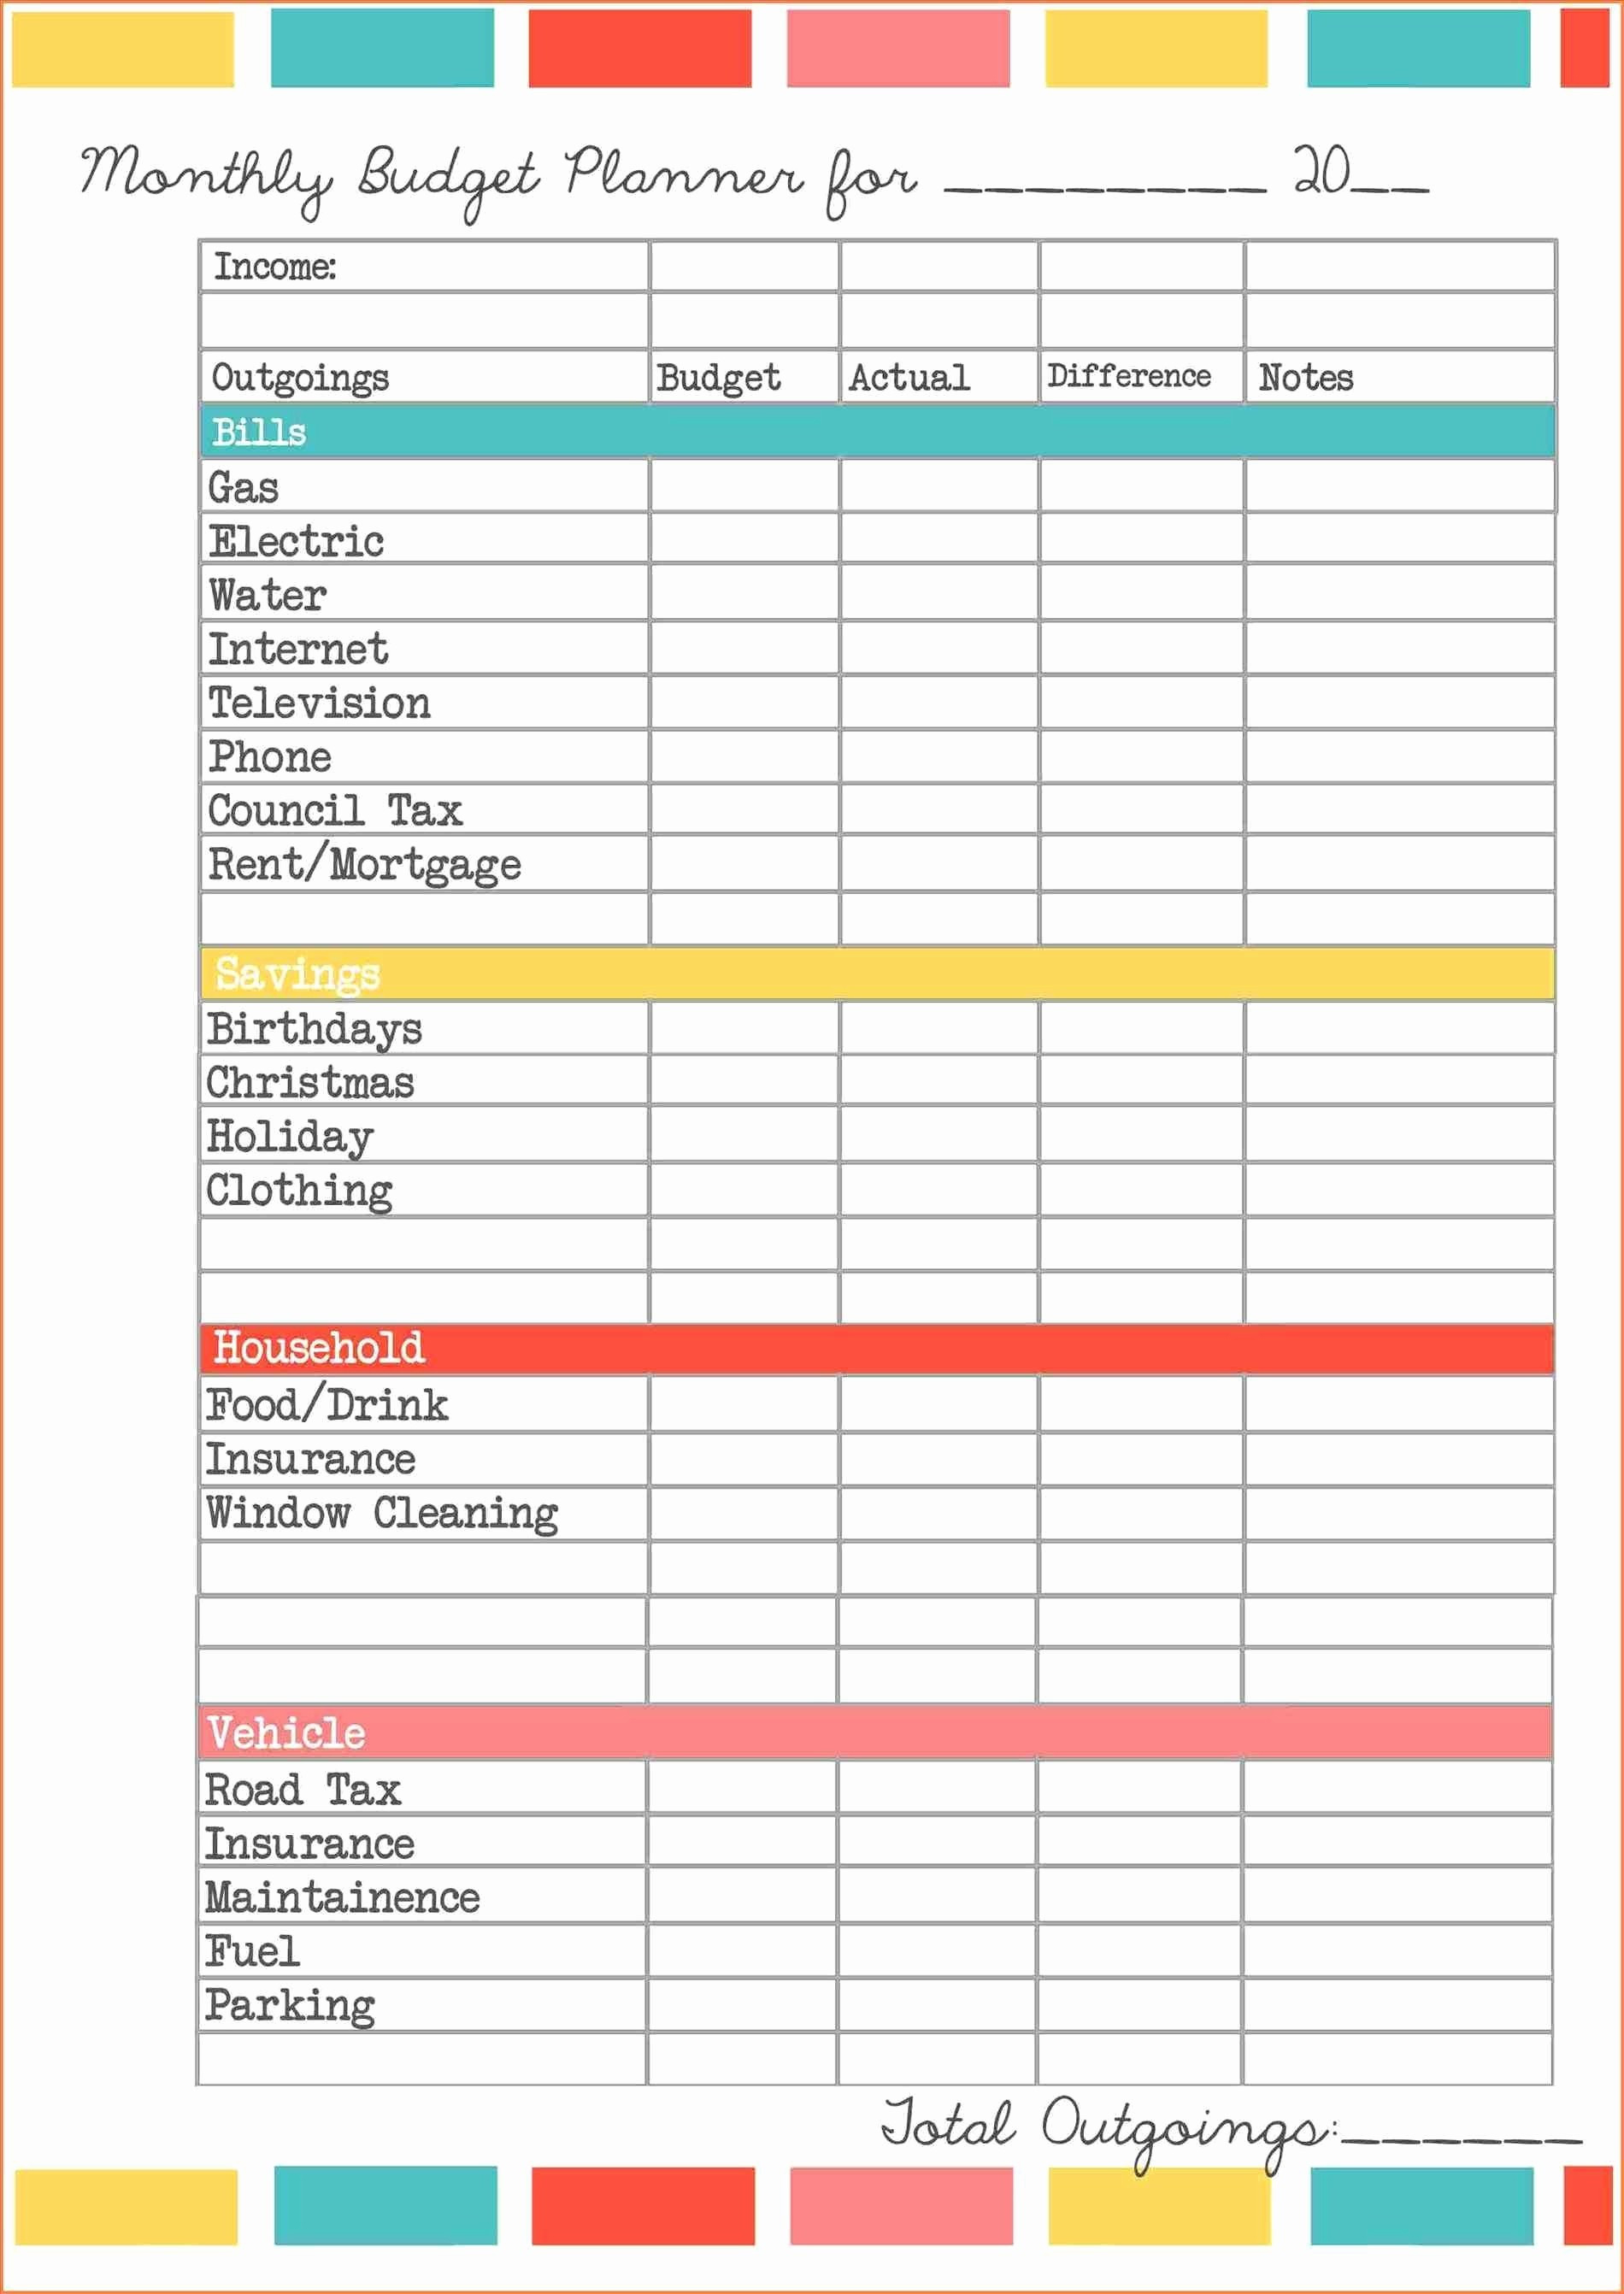 Free Accounting Spreadsheet For Small Business Throughout Free Accounting Spreadsheets Spreadsheet Template Budget For Mac